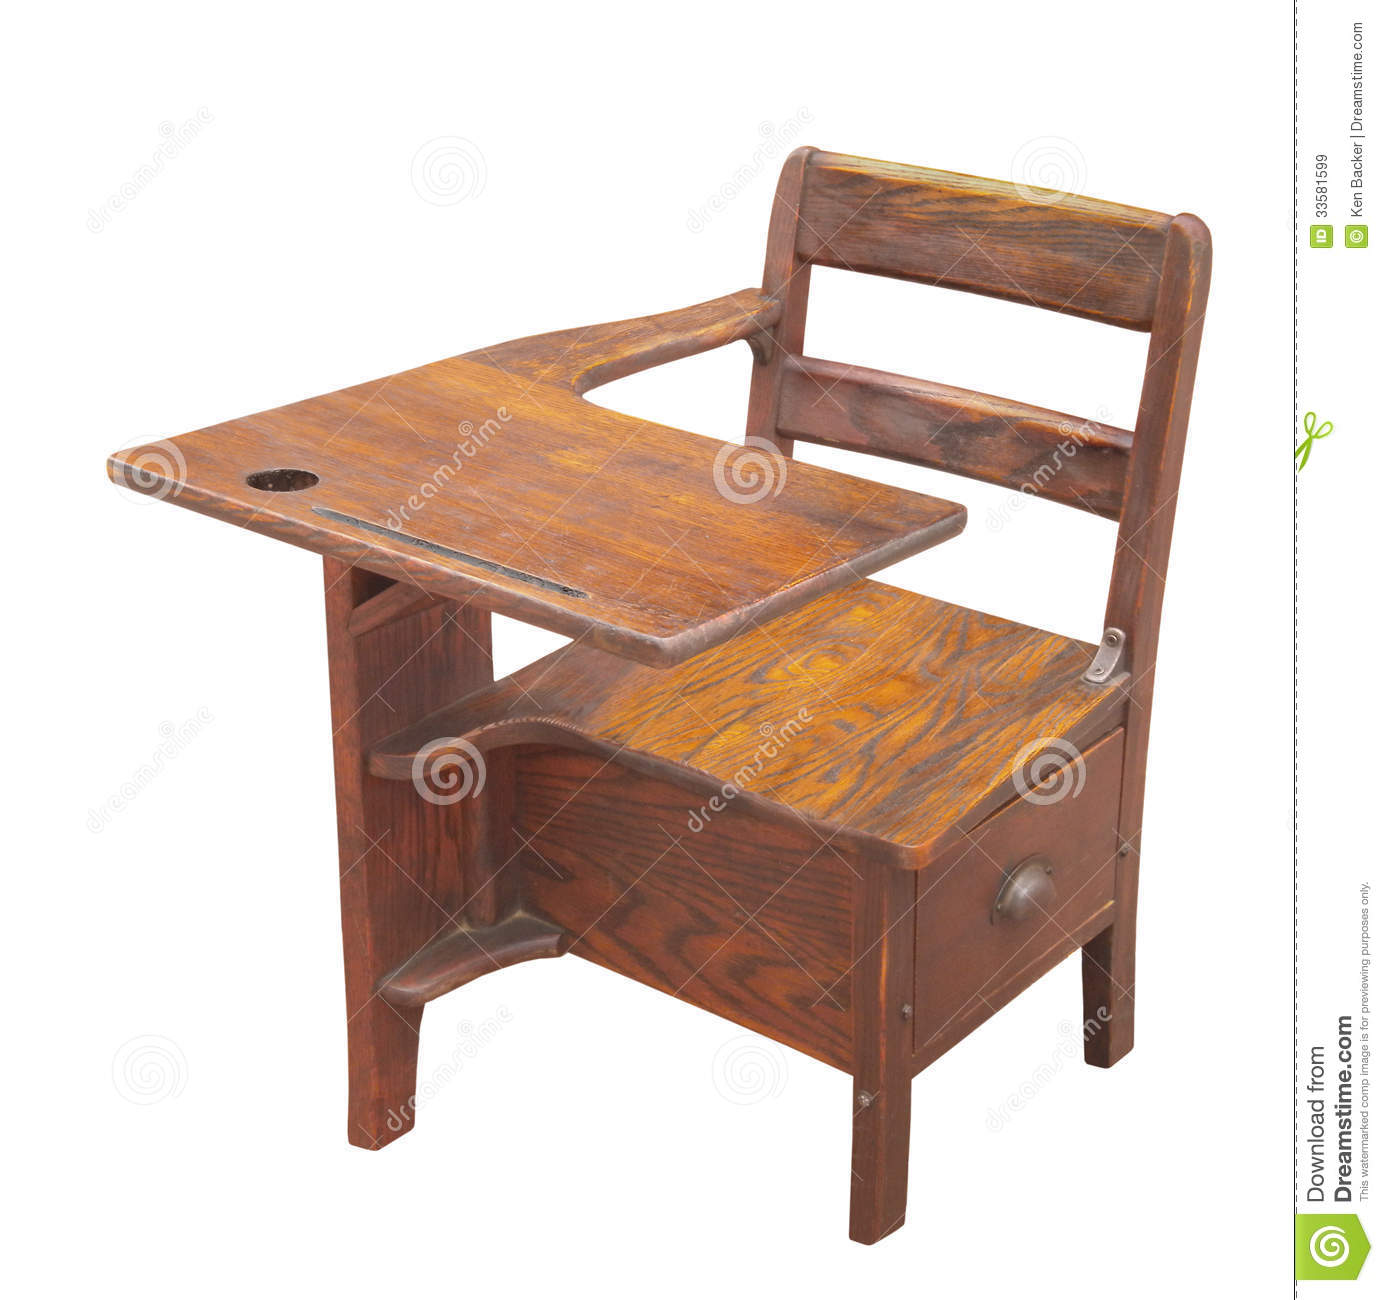 vintage old carpentry desk pinterest exterior images together a best school desks on with fresh bench art antique